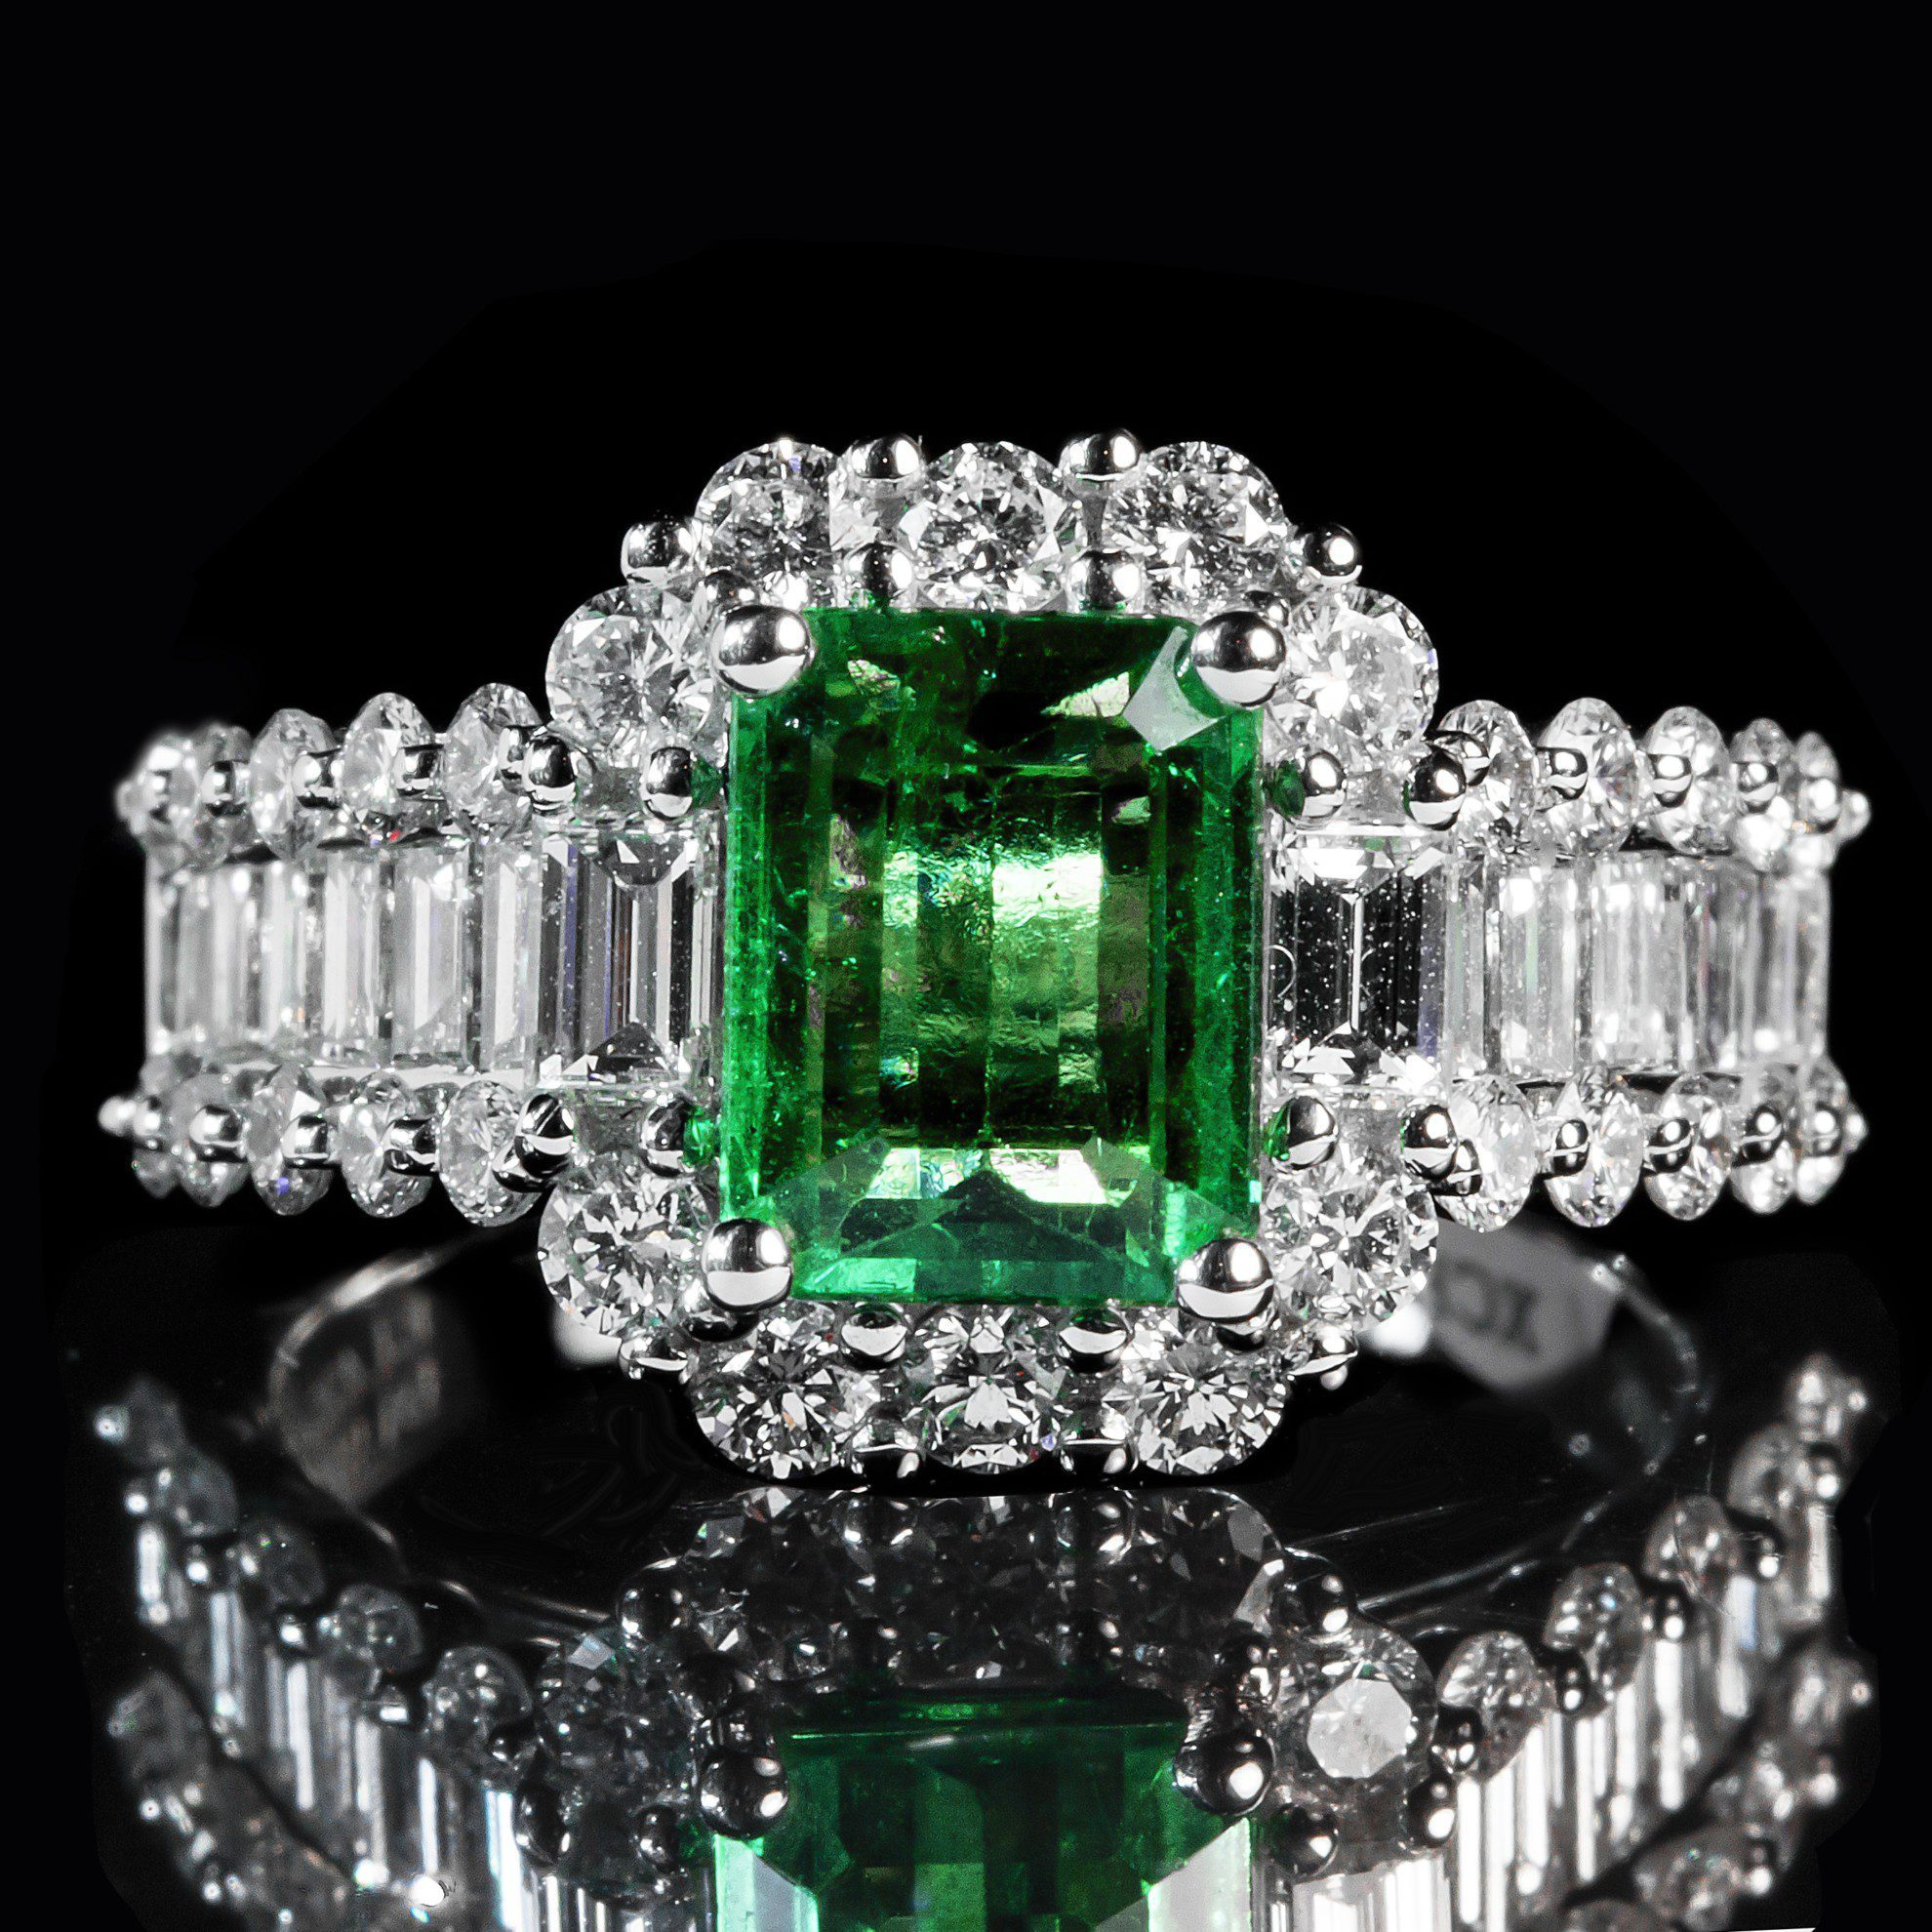 in gold treated ring white sapphire tw heat cut diamonds with emerald